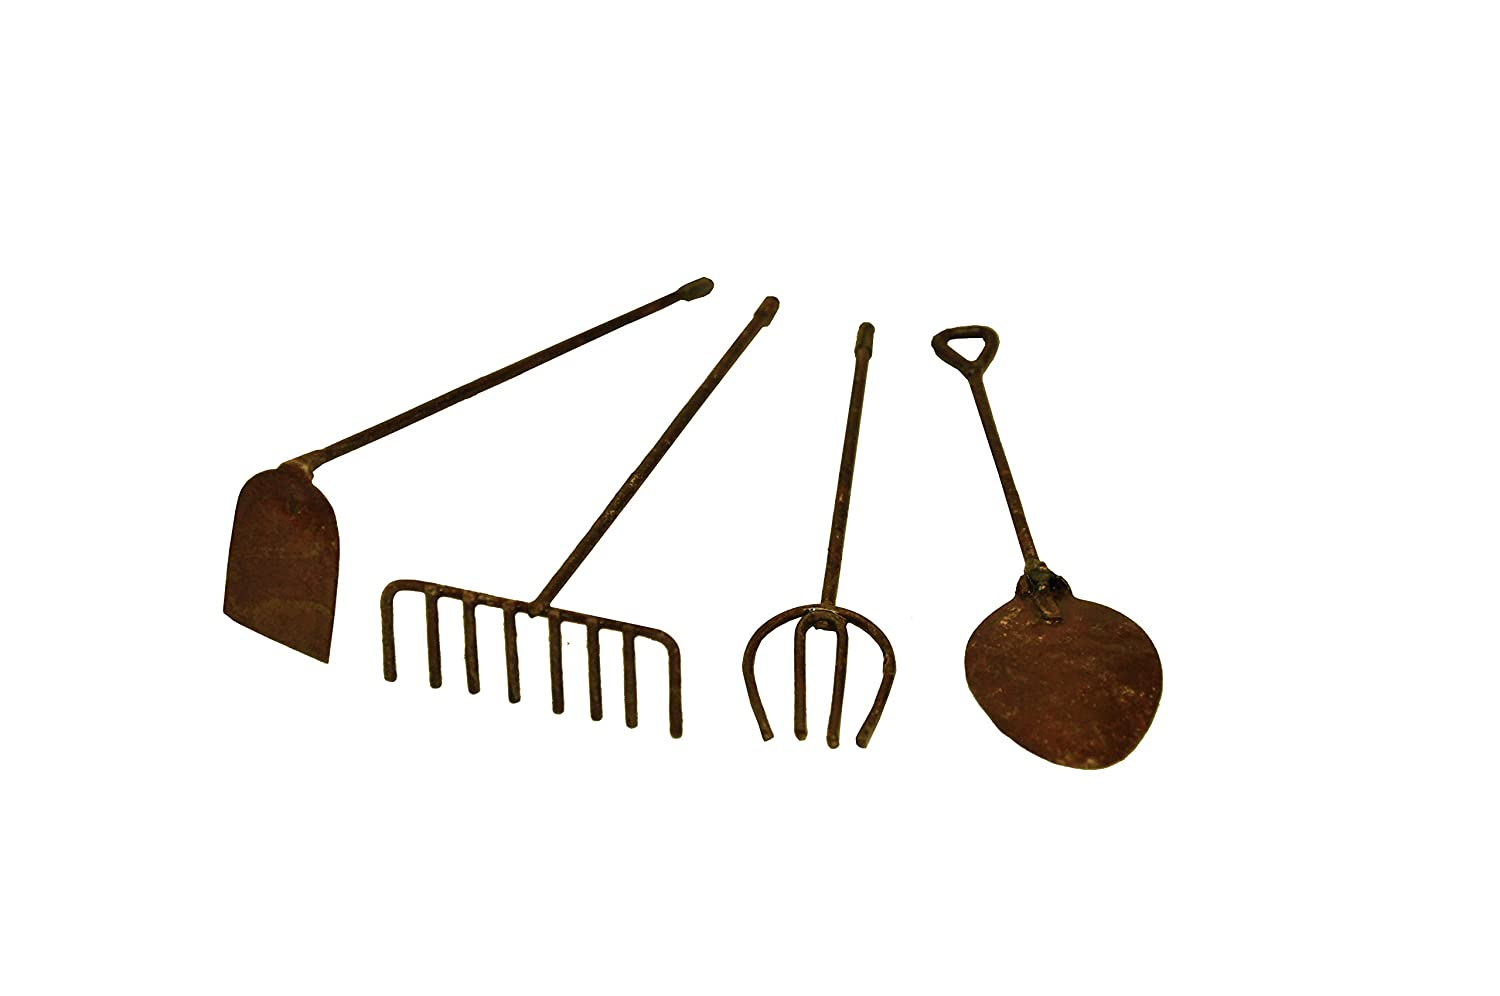 G & F MiniGardenn 10024Fairy Garden Miniature Tools (Set of 4), Rustic